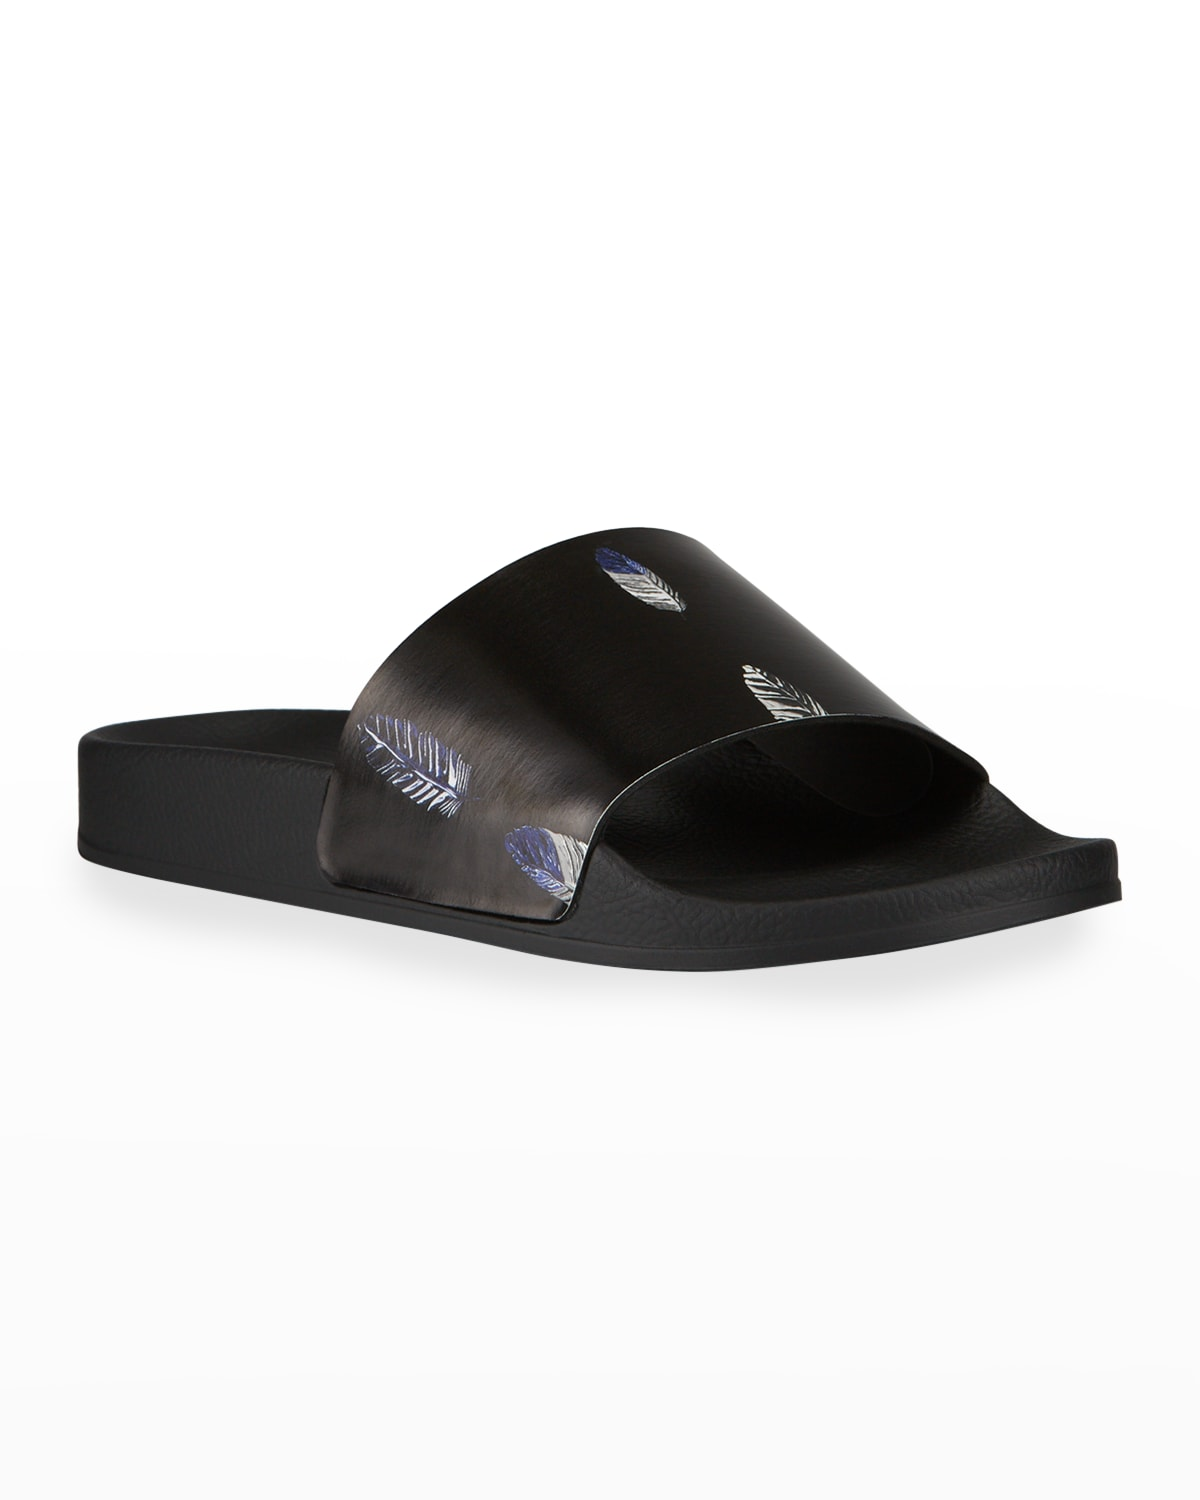 Men's County Feather-Print Pool Slide Sandals